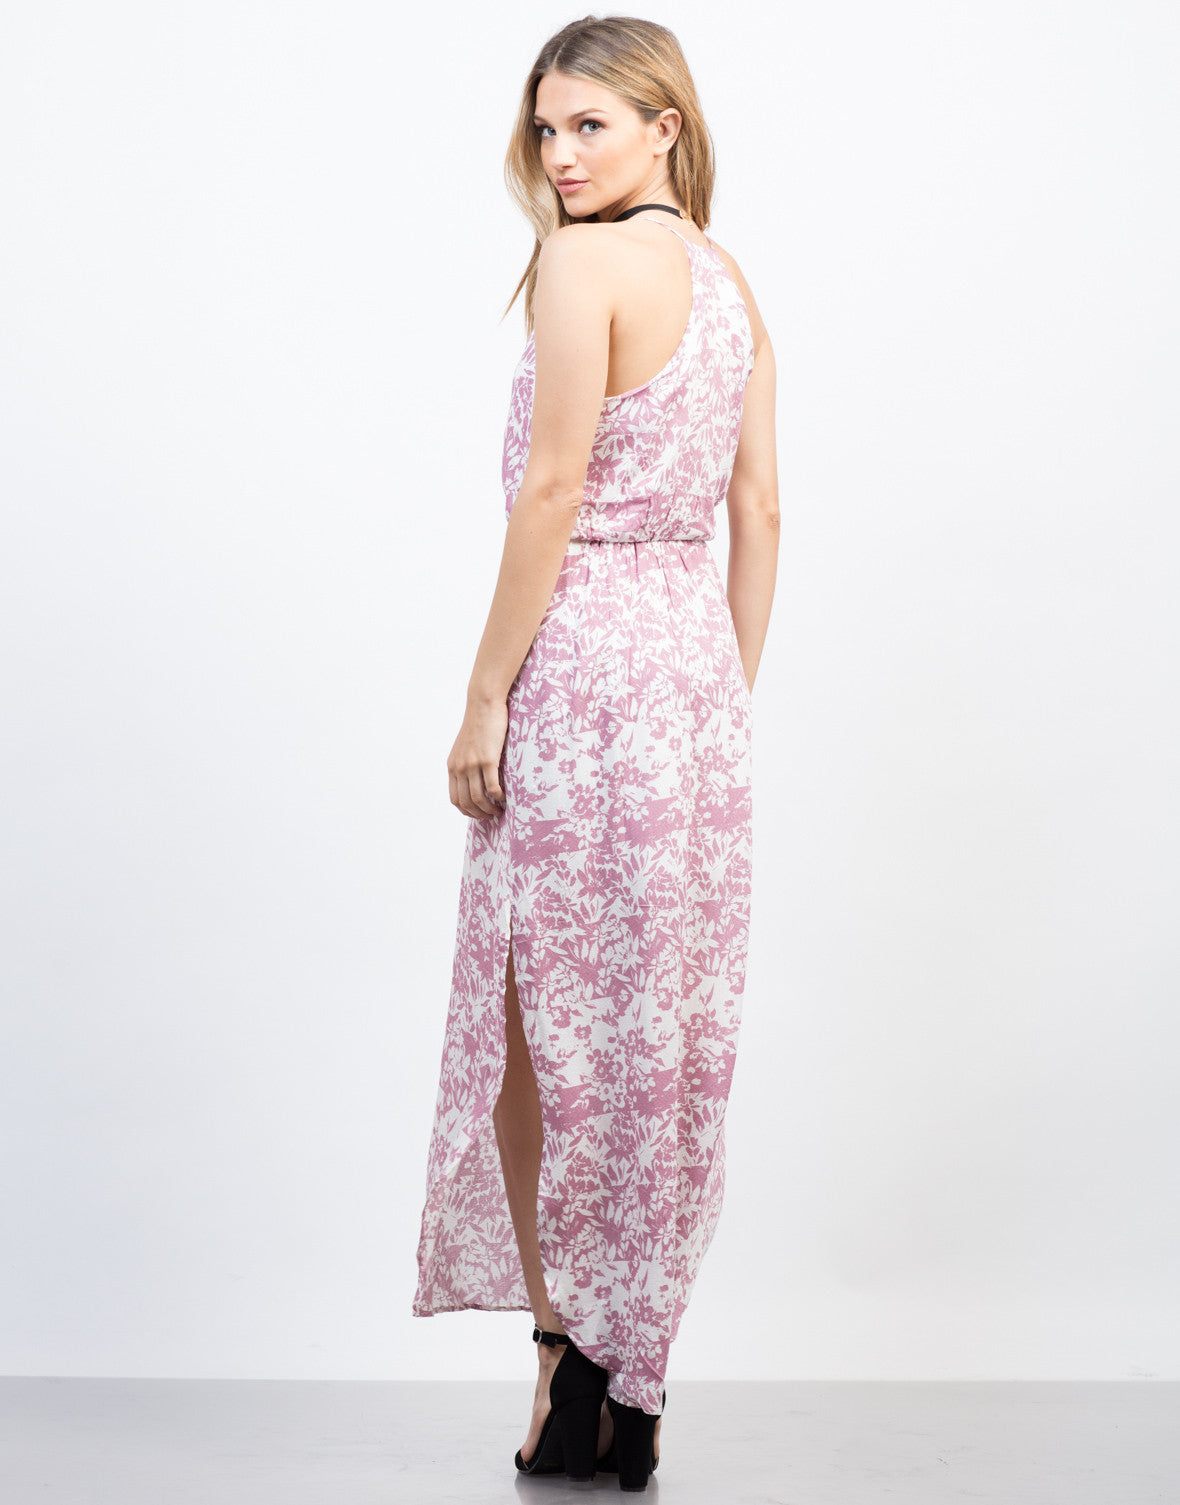 Back View of Spring Floral Maxi Dress